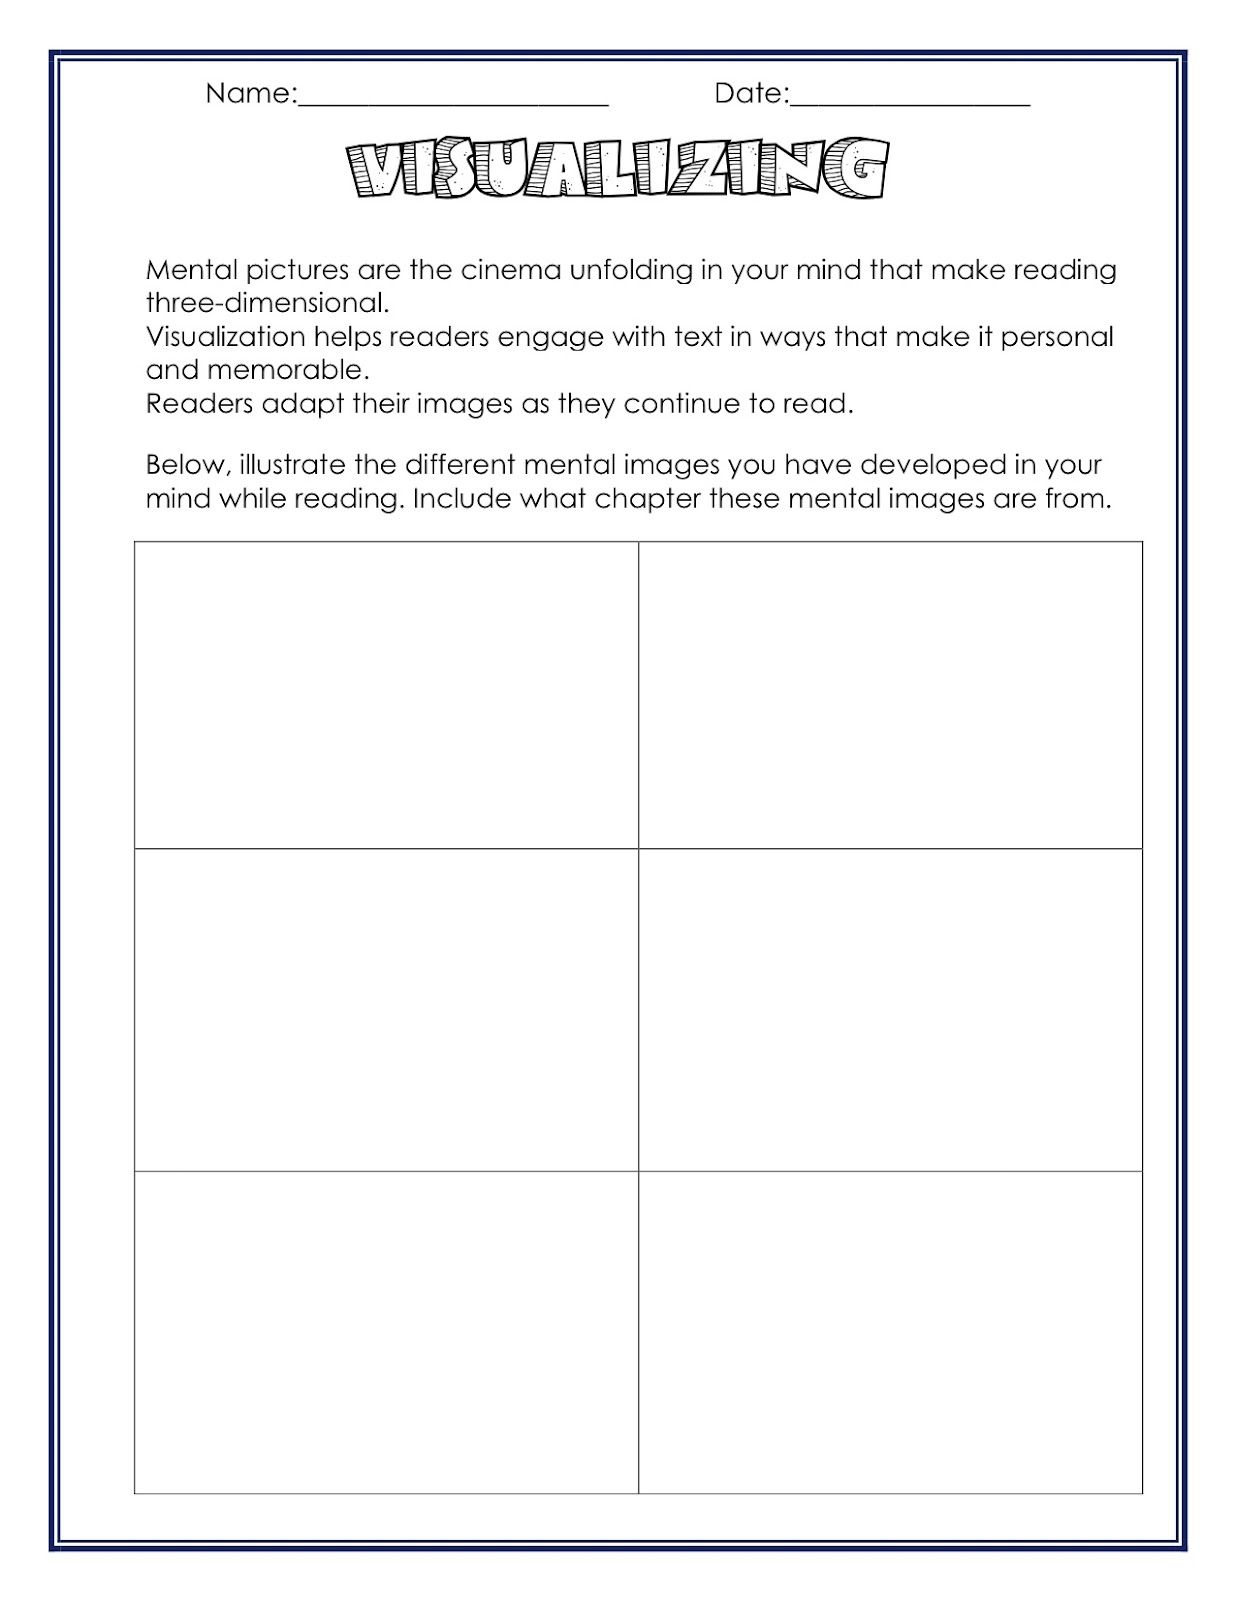 Worksheets Reading Comprehension Strategies Worksheets neat visualizing worksheet ideas for school pinterest amanda students to use while reading